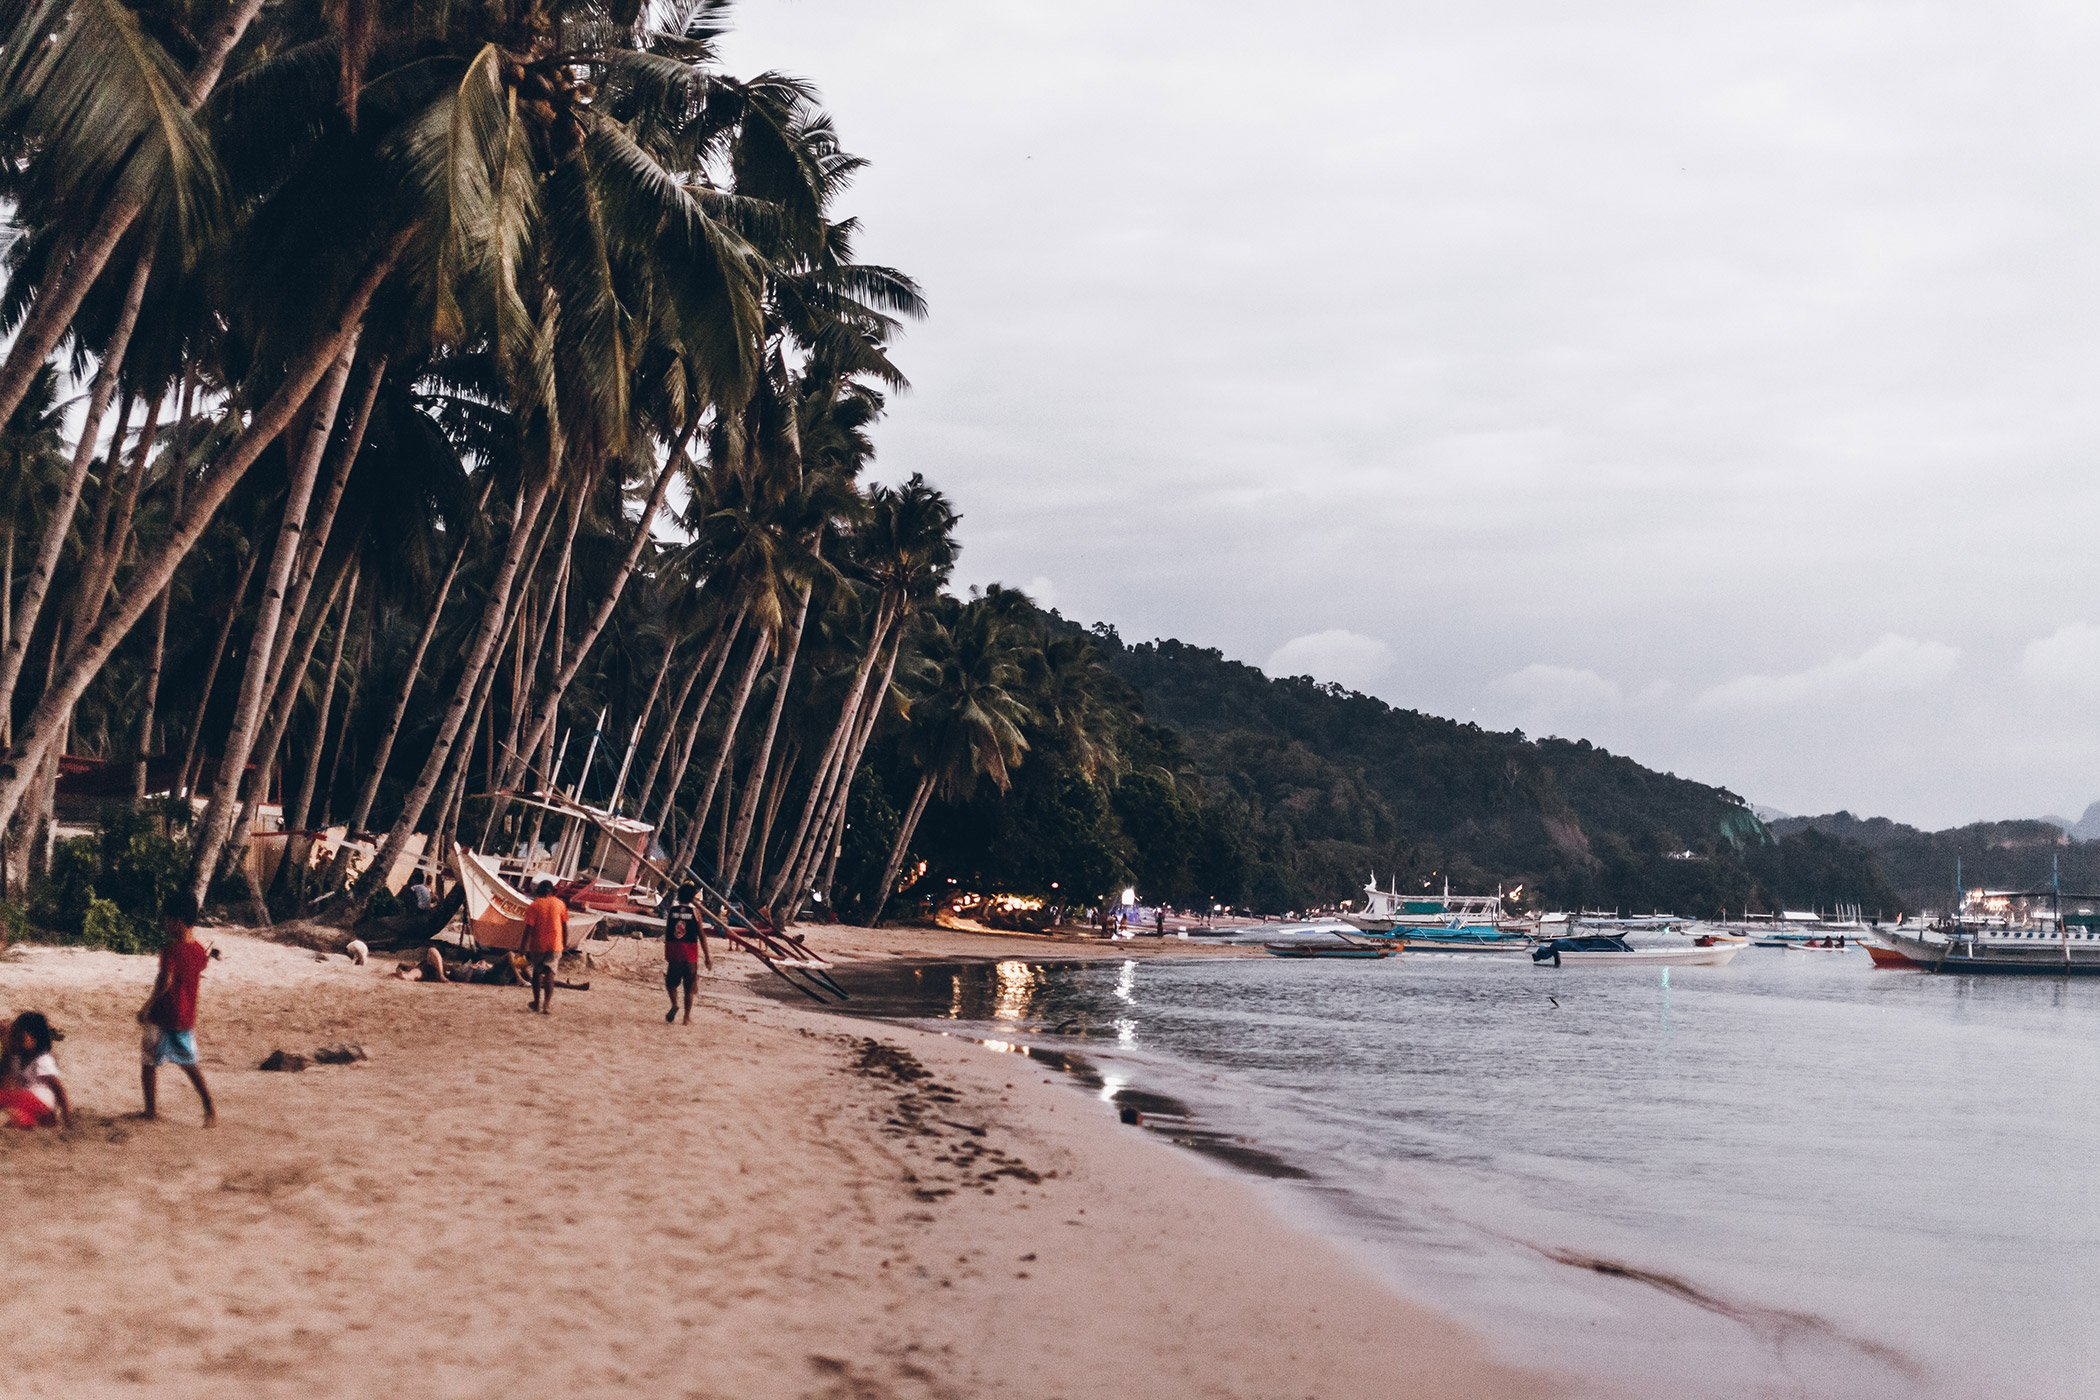 a24501e8a8 The Corong corong beach is the closest beach to town, walking distance from  the main road or 100PHP with a tricycle (like a tuktuk). The beach itself  is not ...